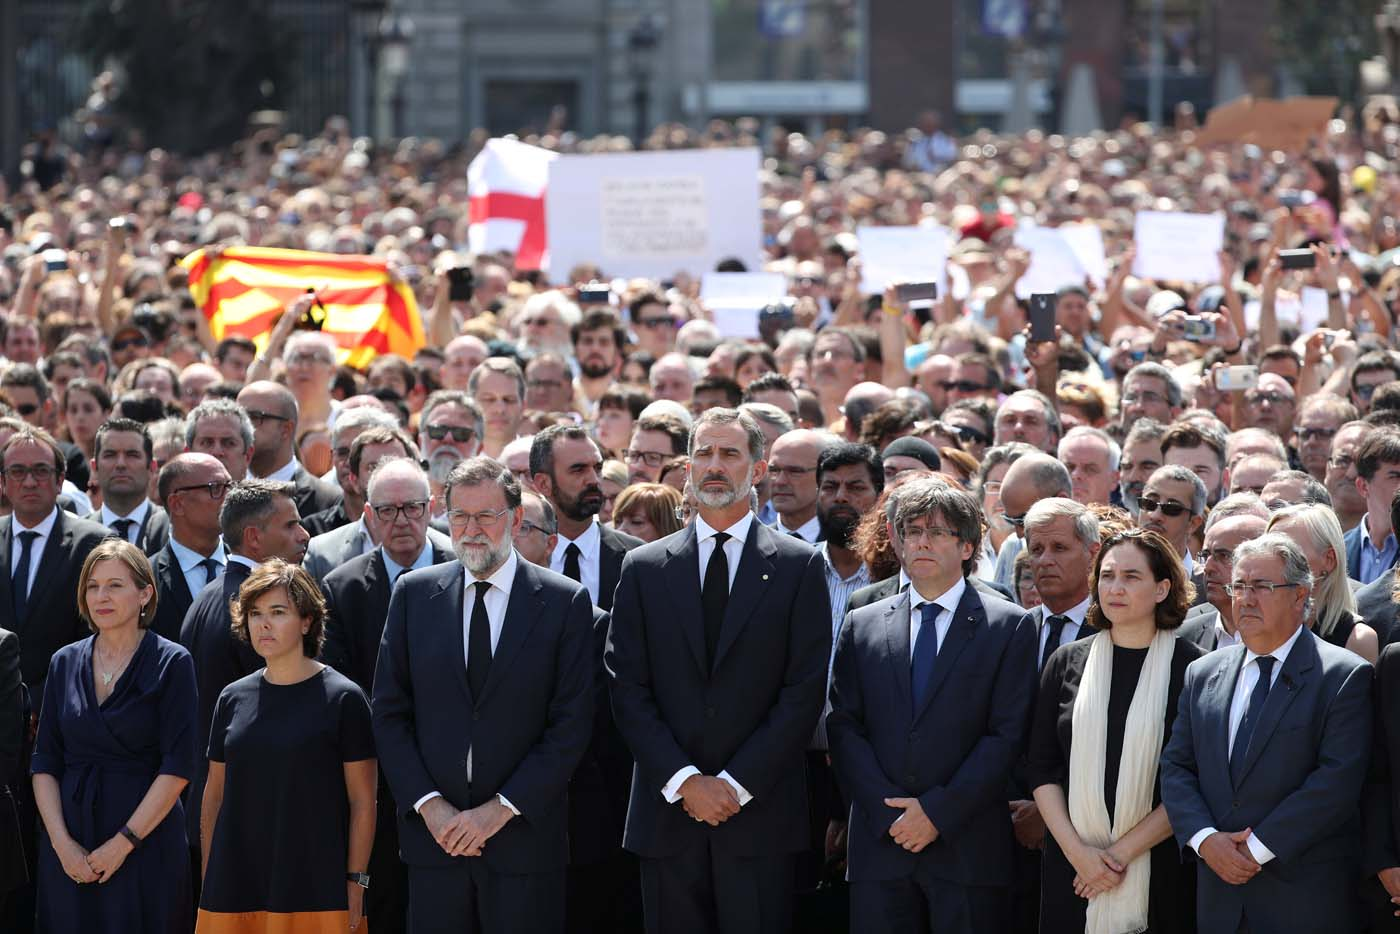 King Felipe of Spain and Prime Minister Mariano Rajoy observe a minute of silence in Placa de Catalunya, a day after a van crashed into pedestrians at Las Ramblas in Barcelona, Spain August 18, 2017. REUTERS/Sergio Perez